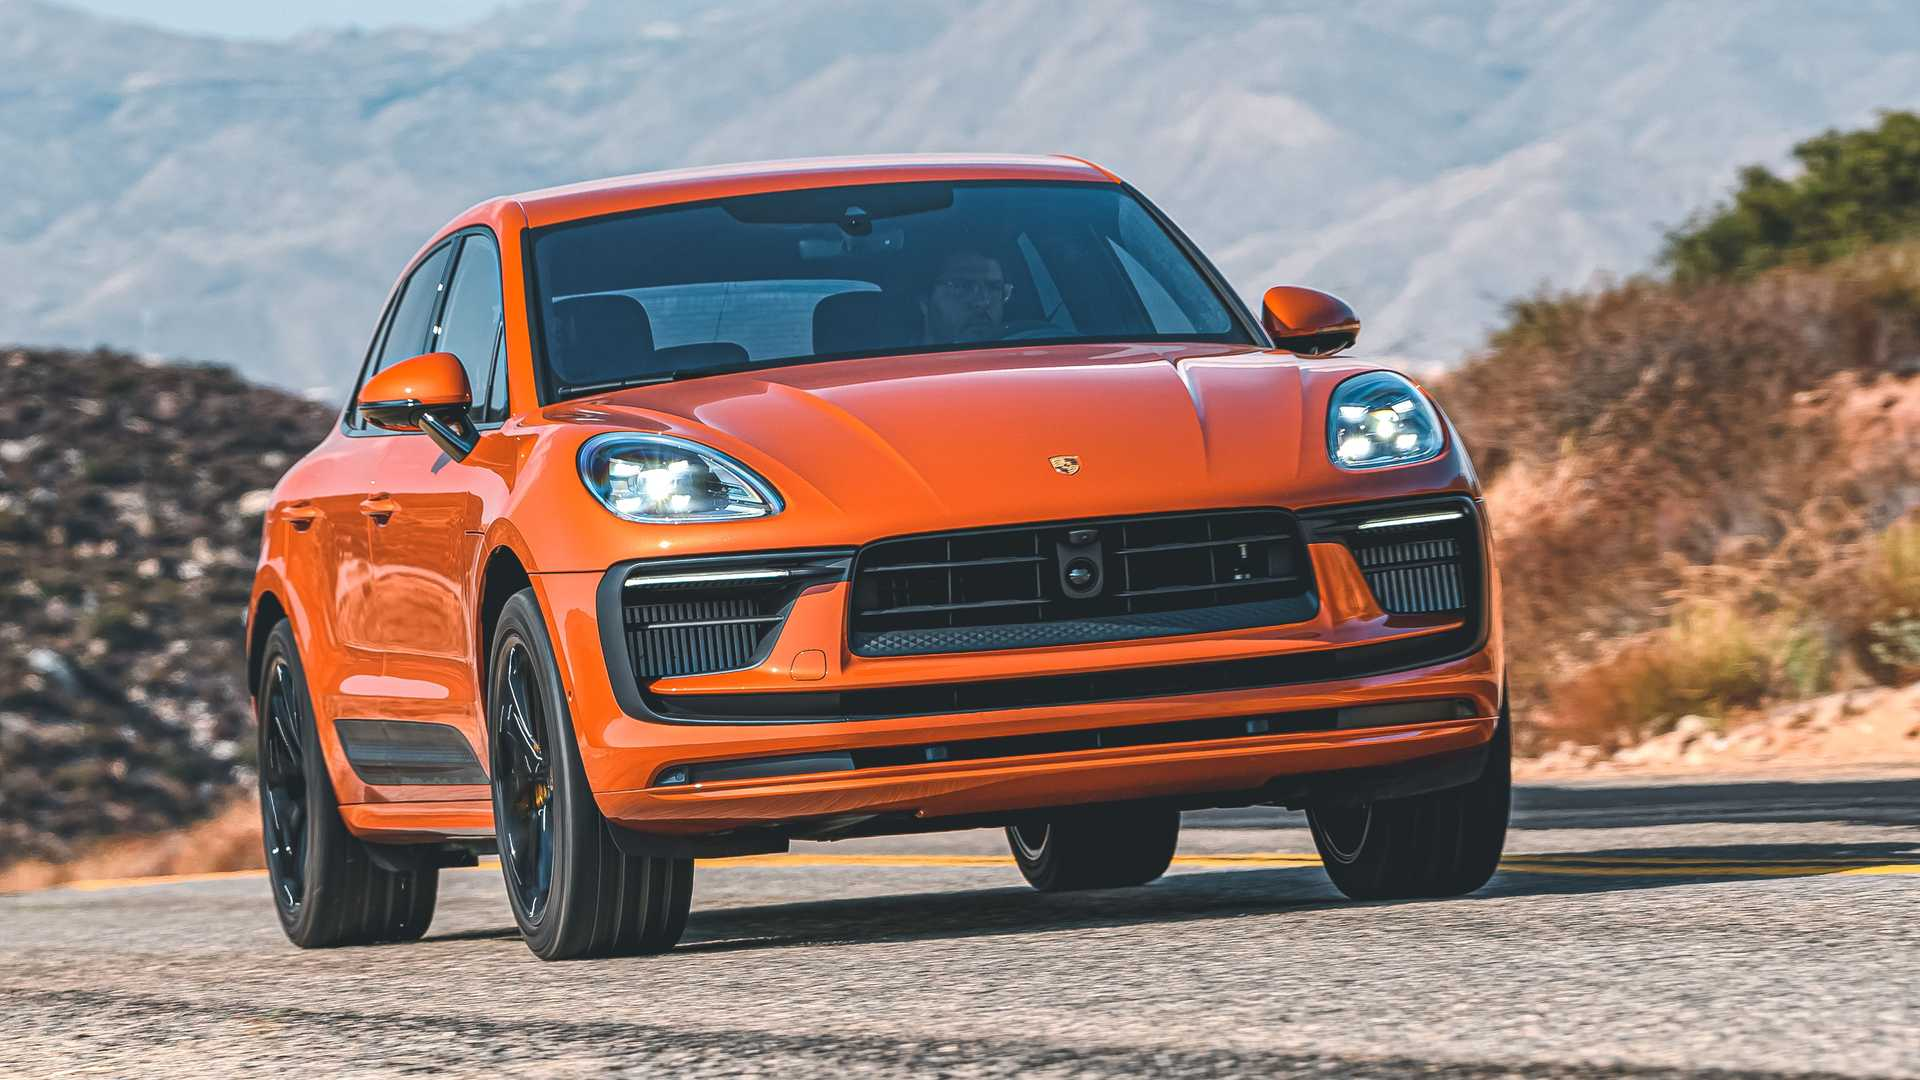 Porsche Macan Gasoline Model Likely To Be Discontinued In 2024